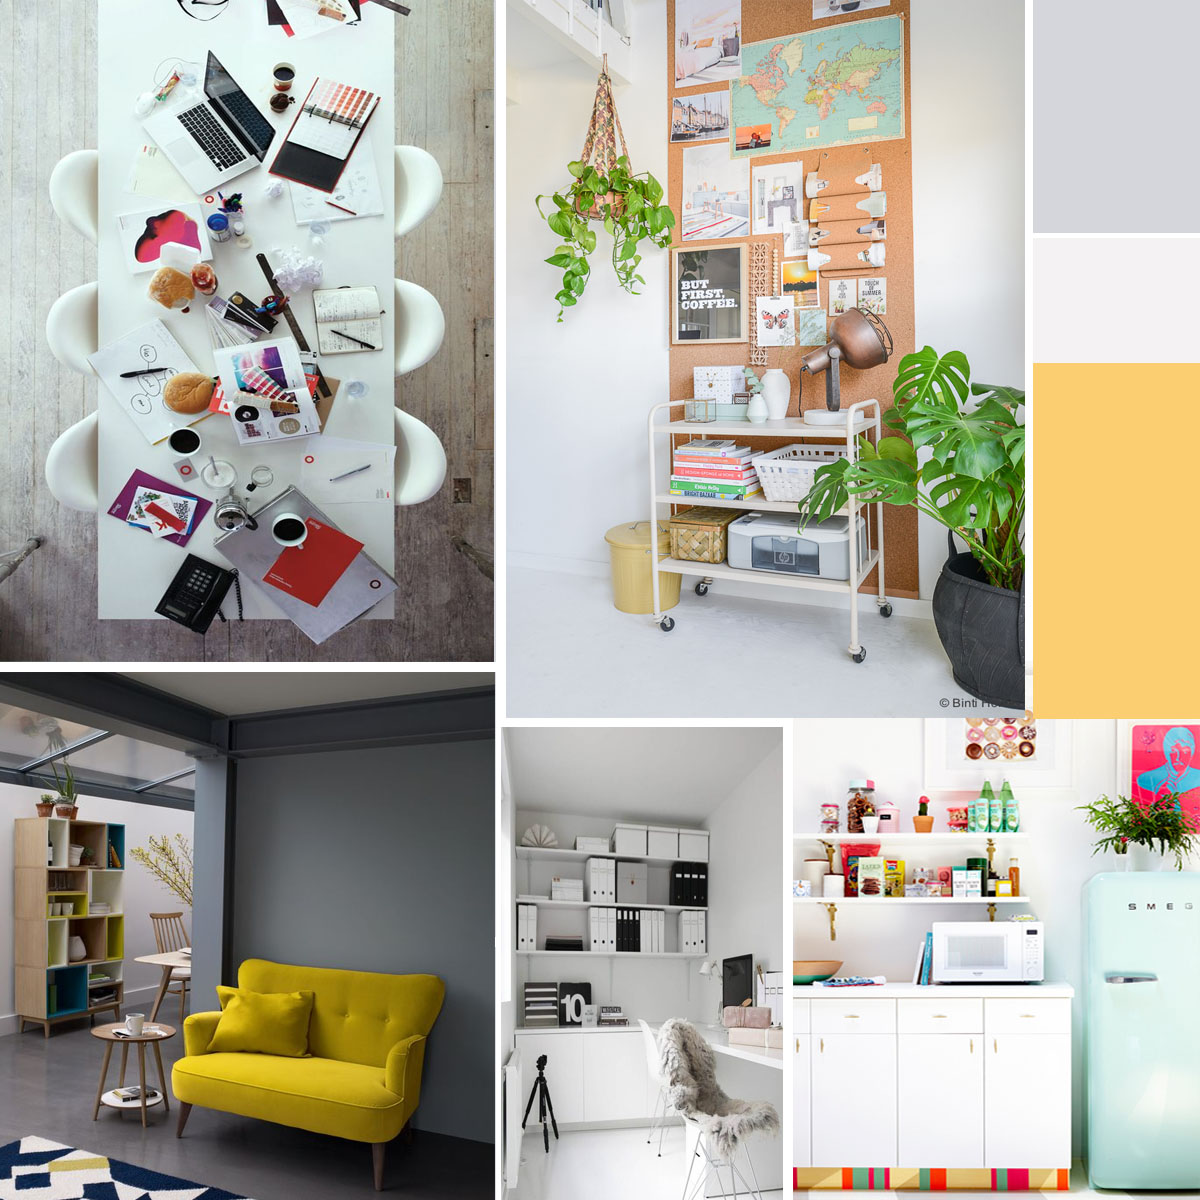 Uncategorized Design Your Office Space jenpen creative studio assignments 11 12 design your office bedroom space